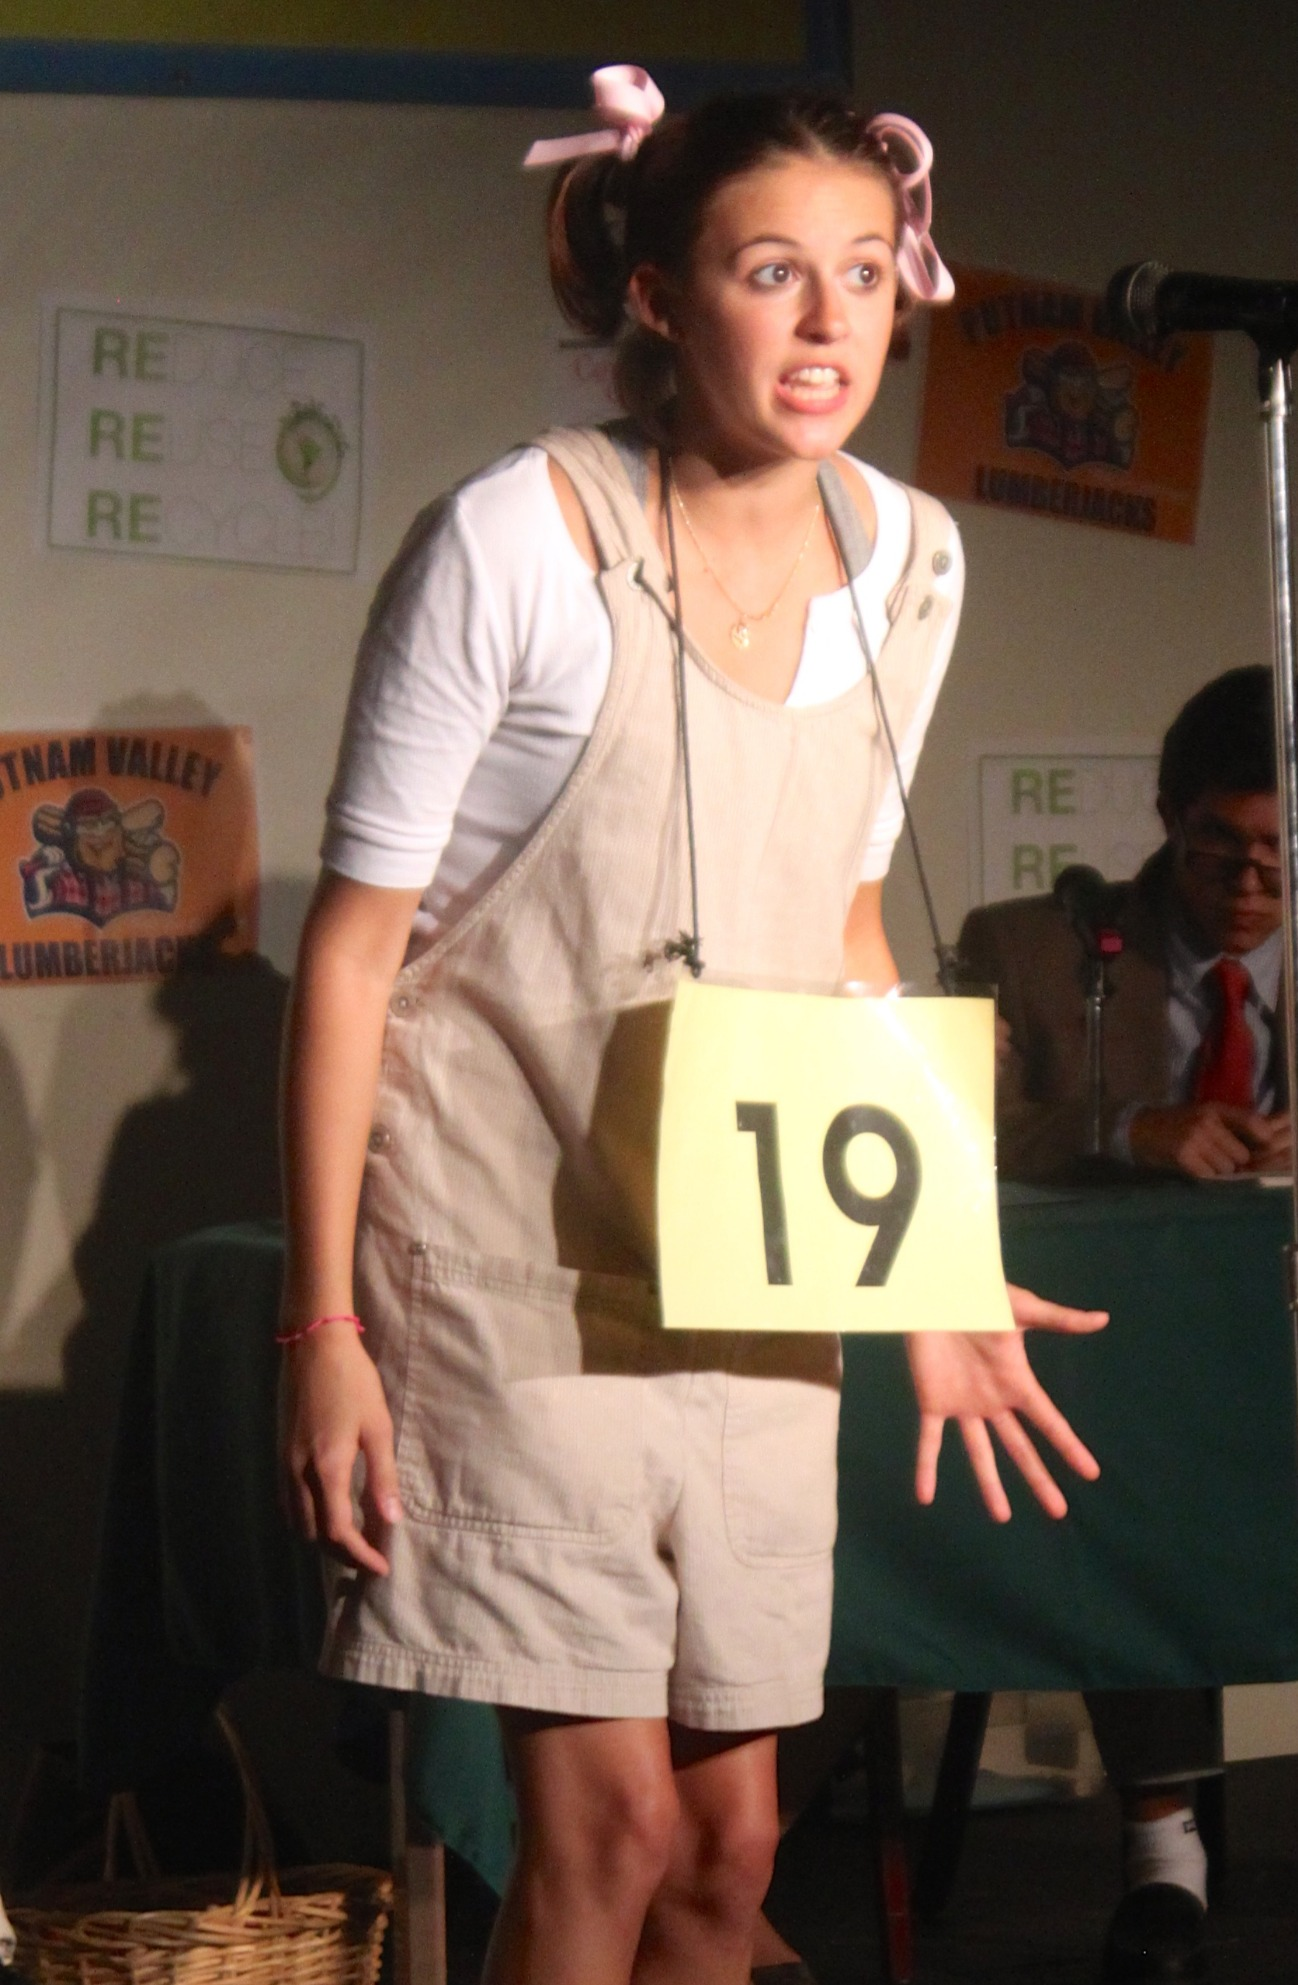 OLIVE in Spelling Bee